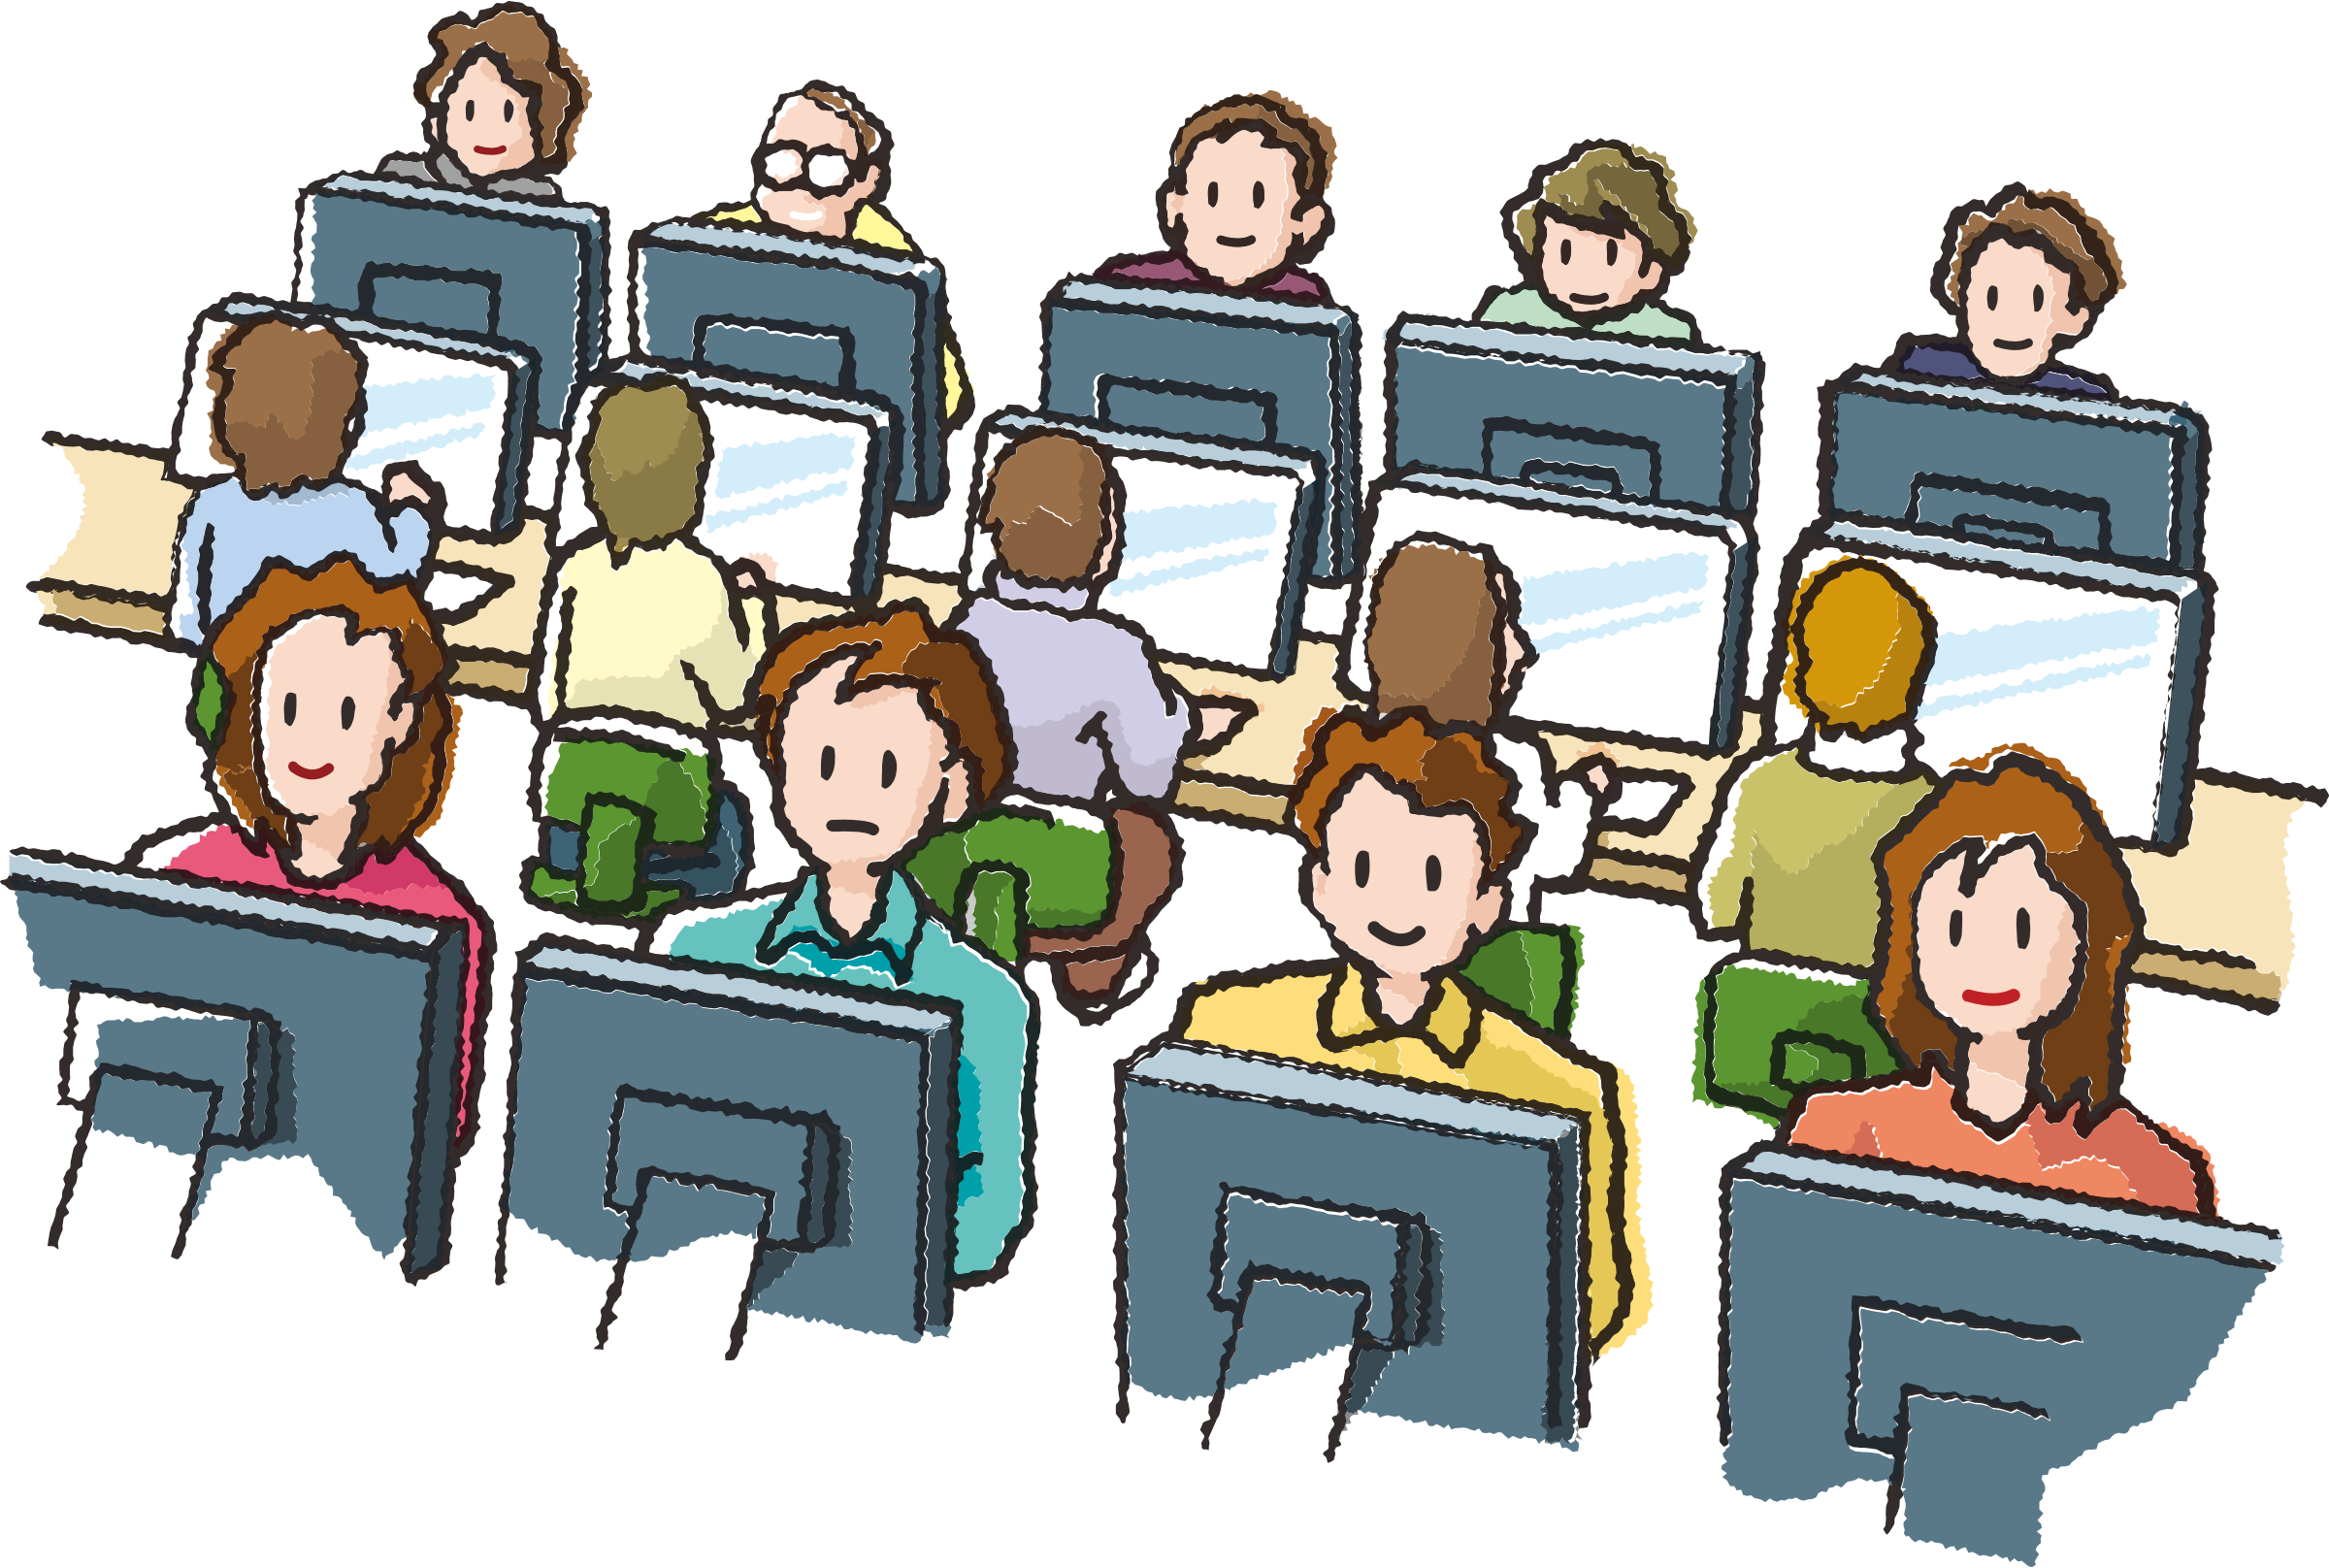 Computer users big image. Computers clipart team